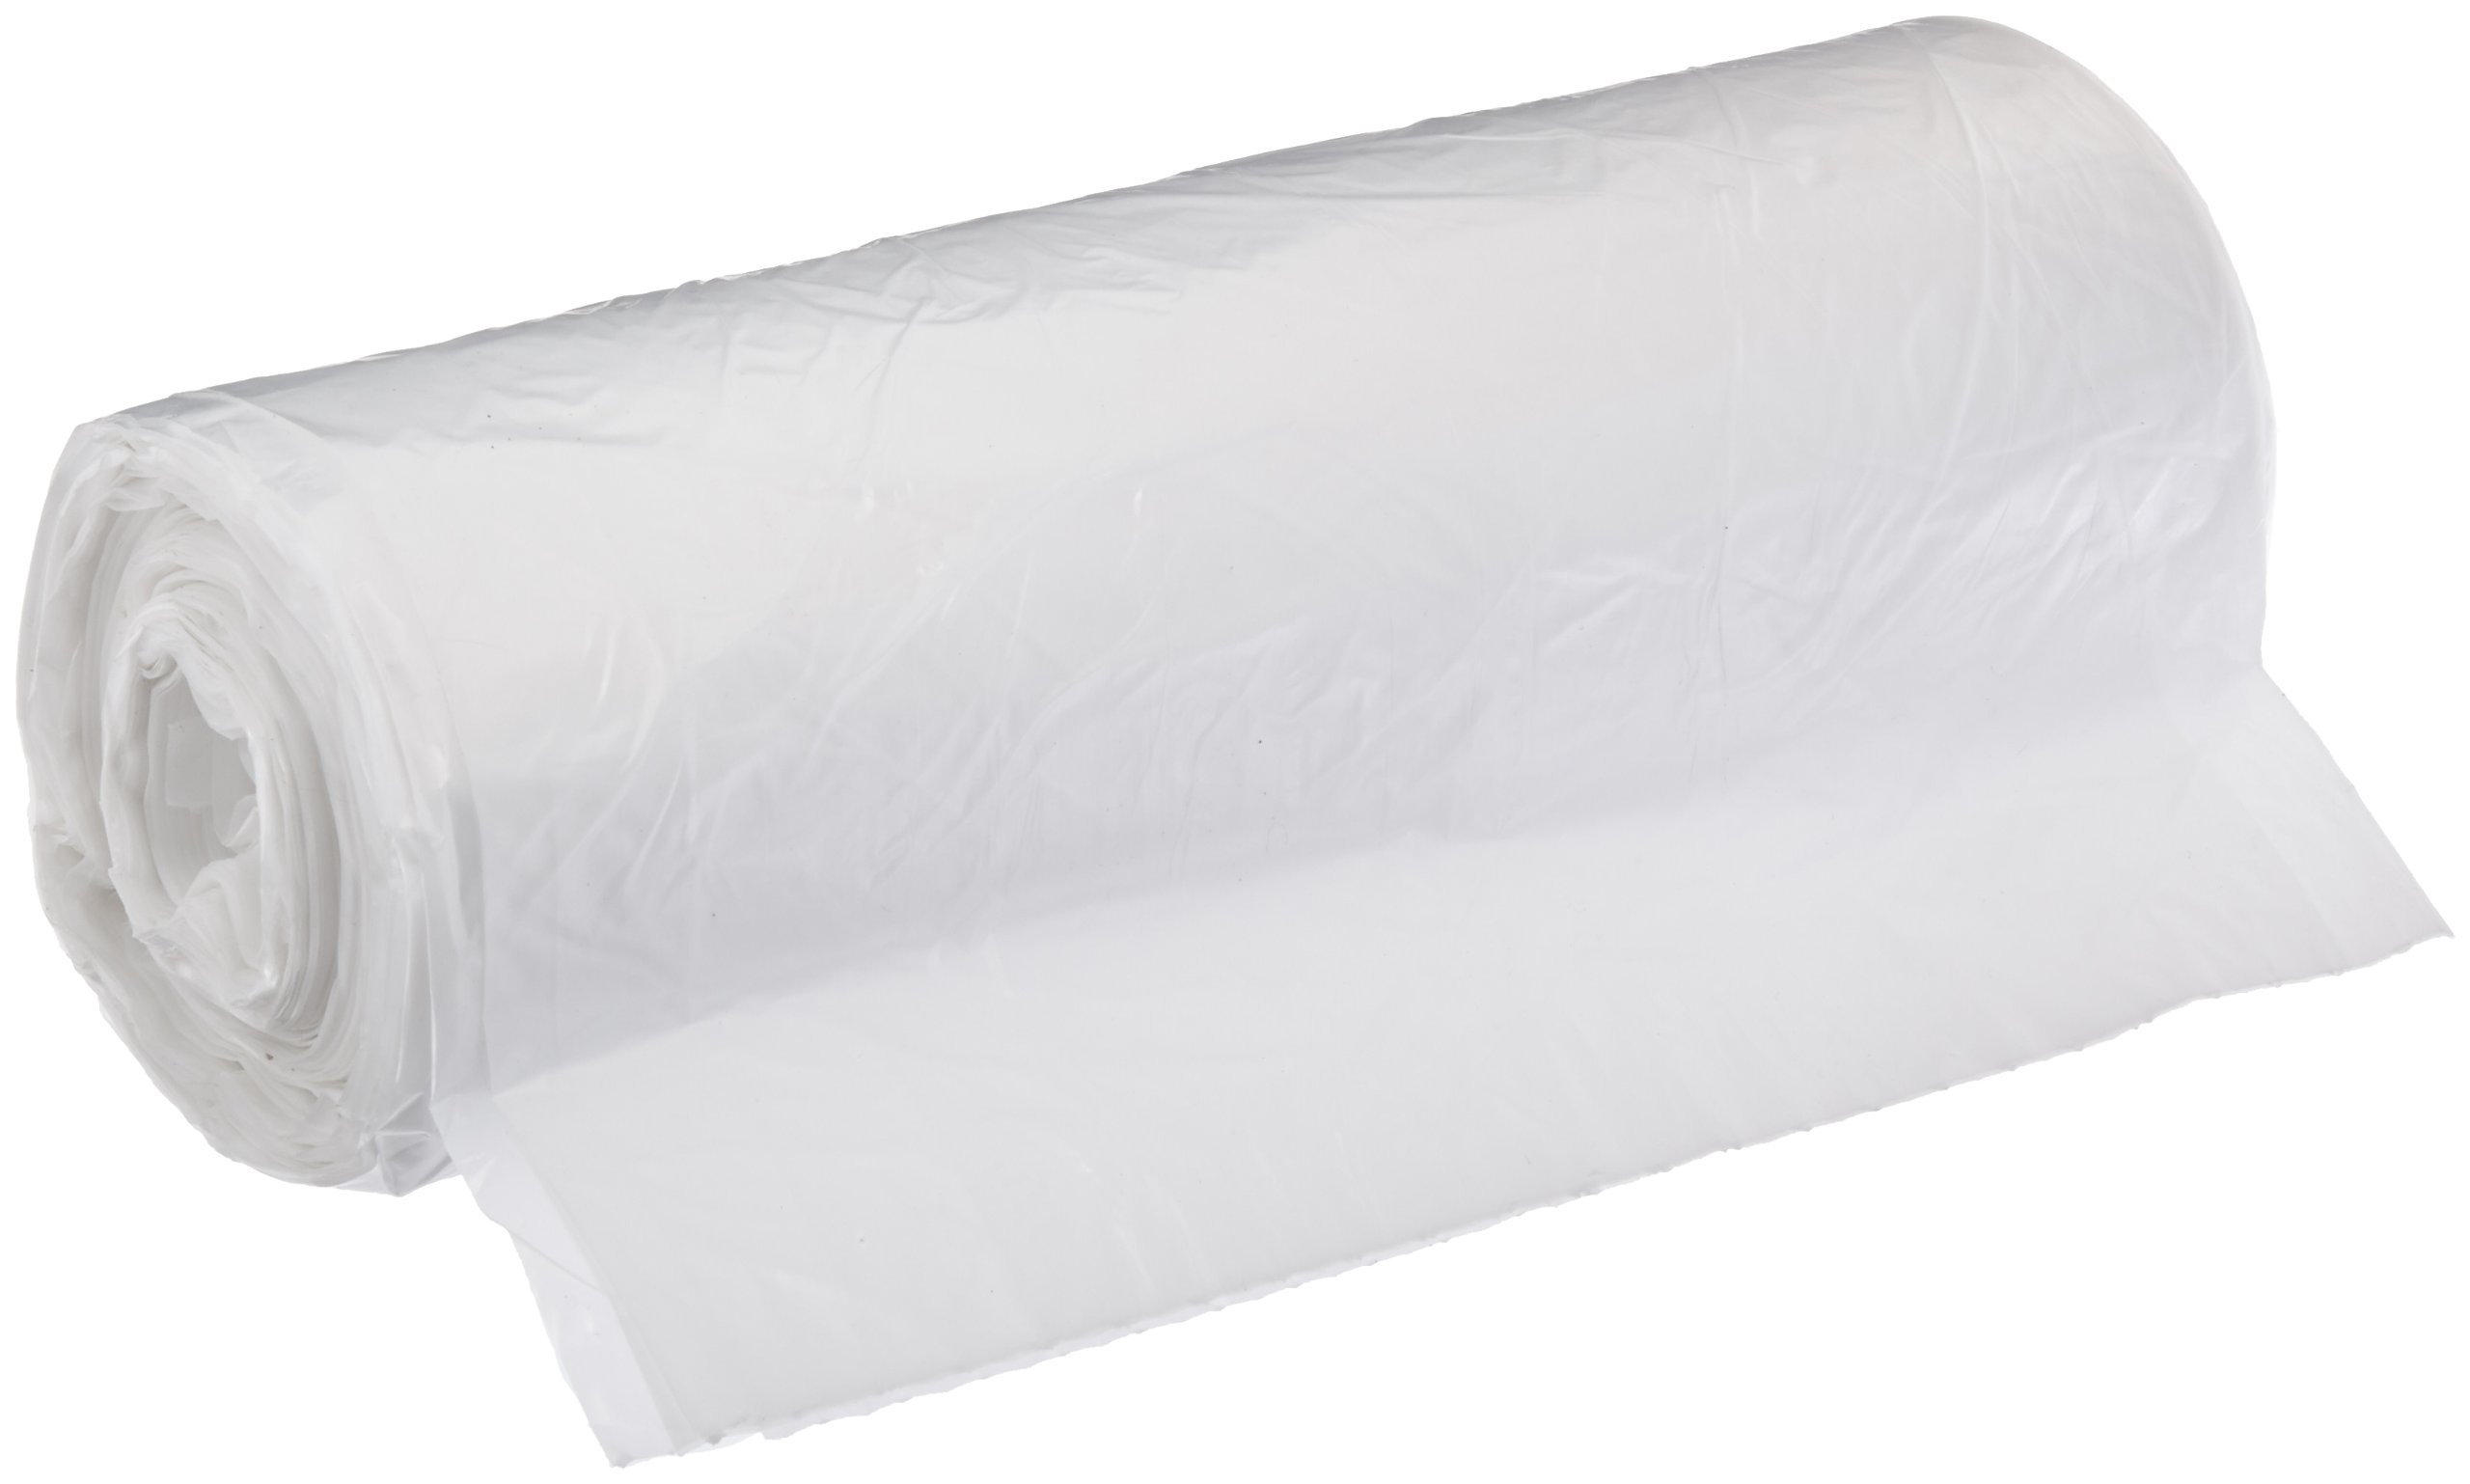 Aluf Plastics SR-366017C SR High Density Star Seal Roll Bag, 50-55 Gallon Capacity, 58'' Length x 36'' Width, Clear (Case of 200) by Aluf Plastics (Image #2)